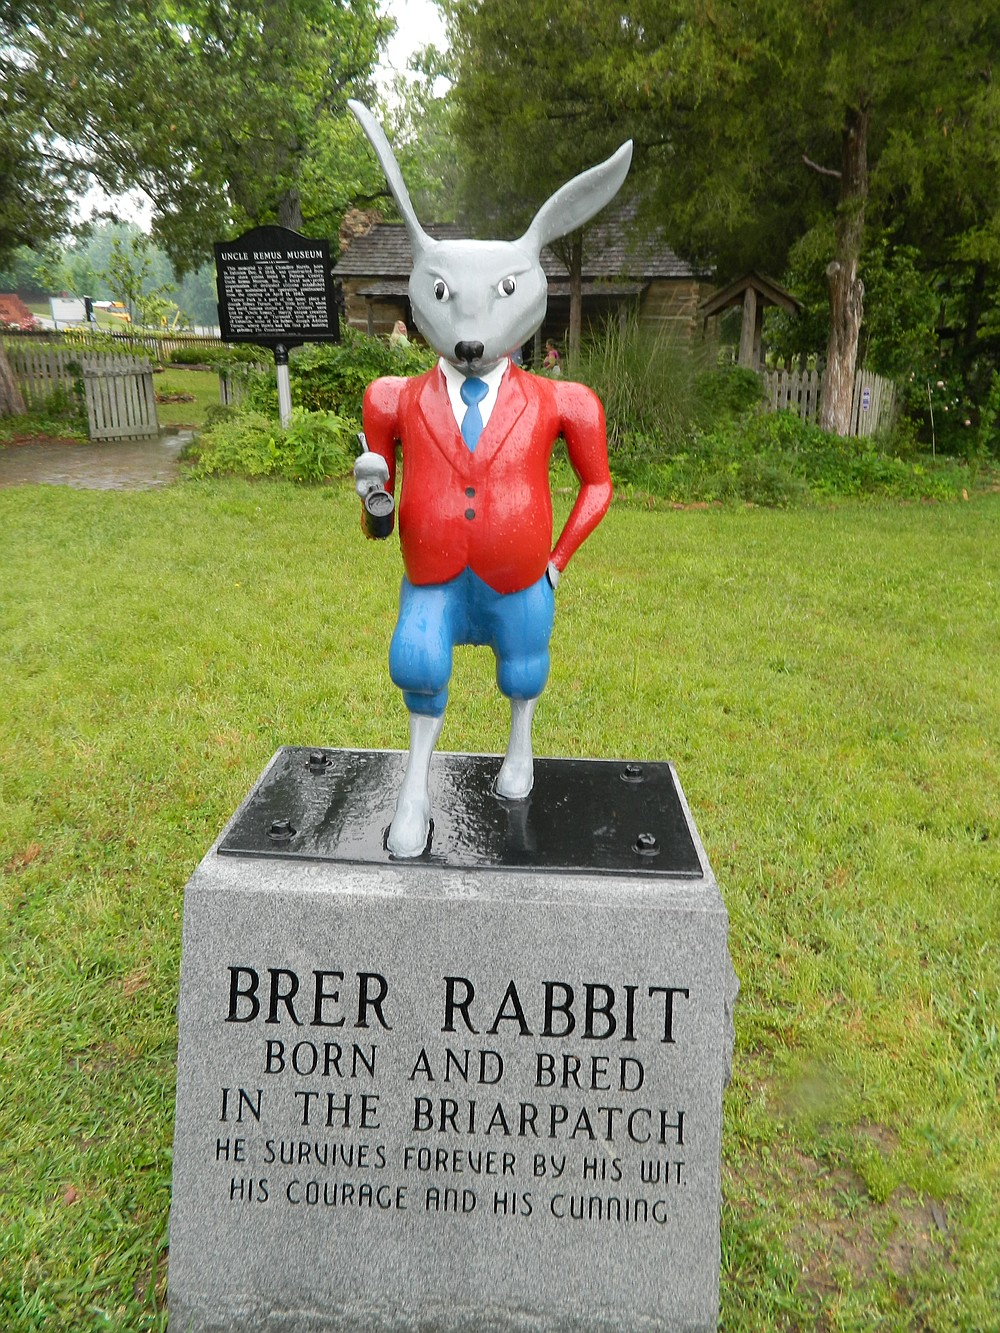 Brer Rabbit statue at the Uncle Remus Museum, Eatonton.